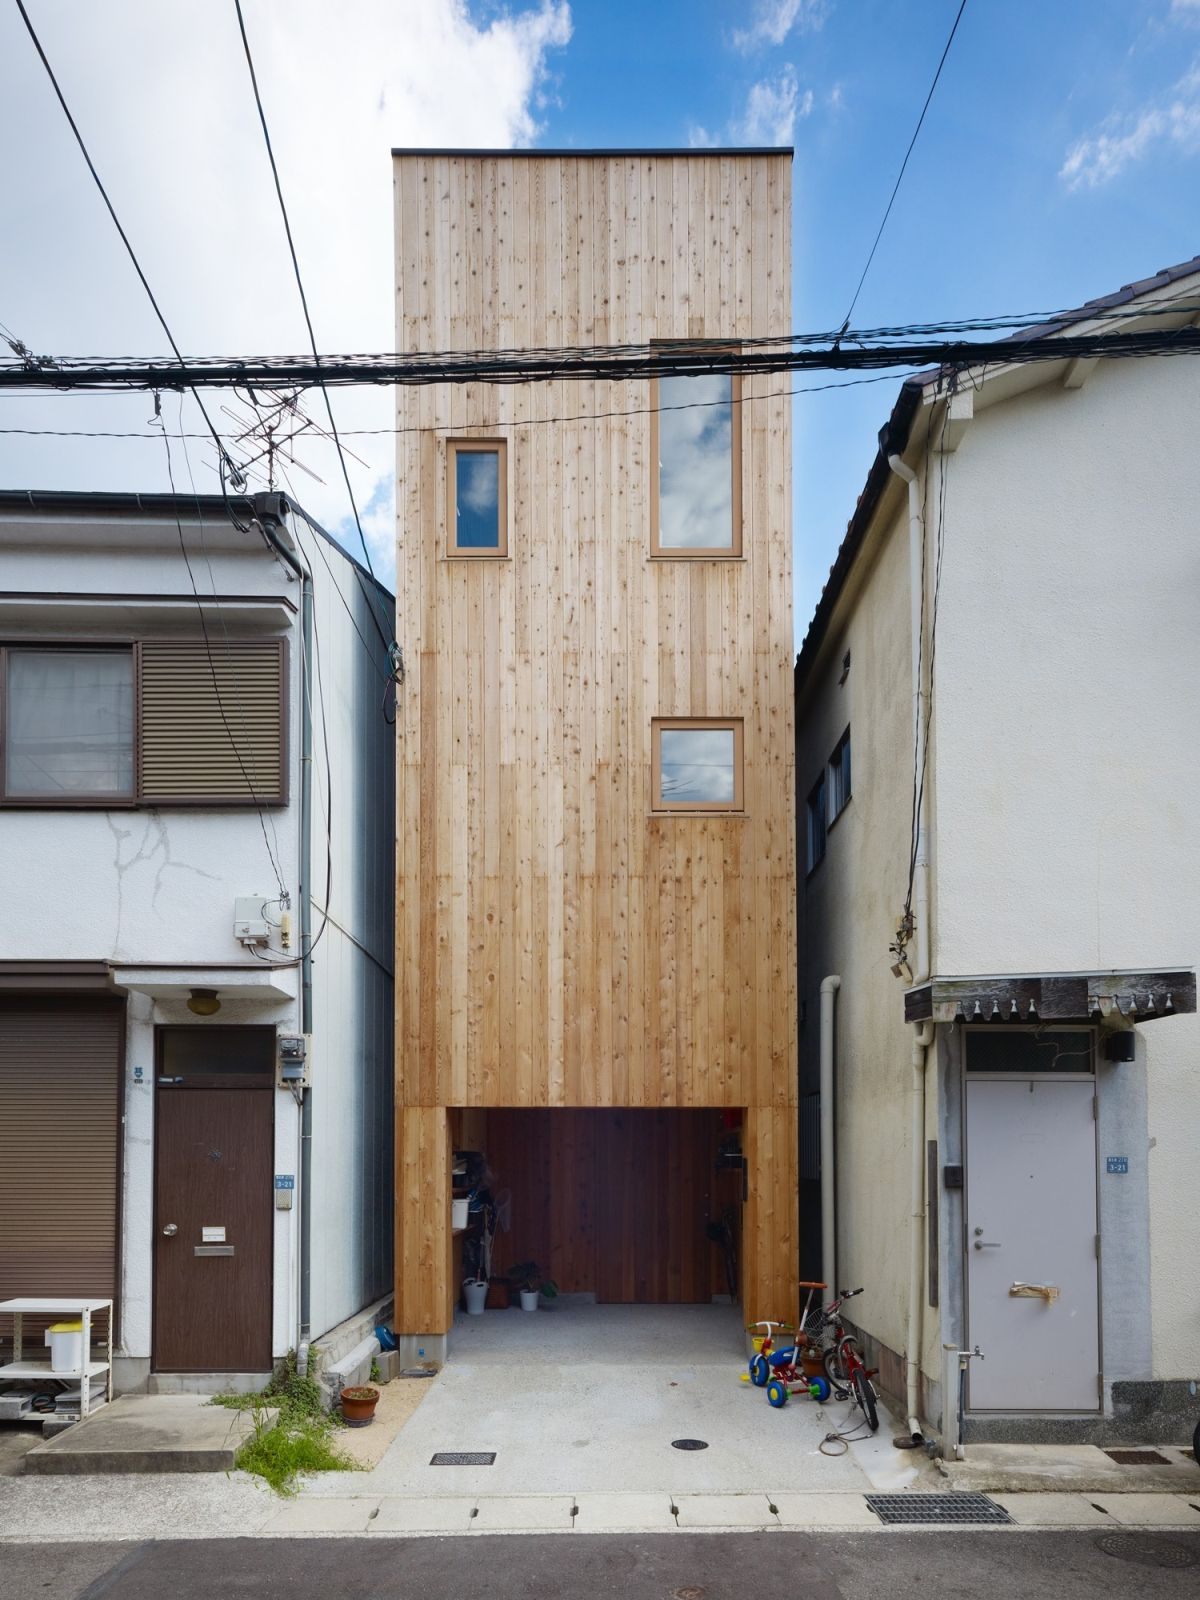 11 Spectacular Narrow Houses And Their Ingenious Design Solutions on houses in tokyo japan, narrow house interior design, small apartment building in japan, micro houses in japan, tall skinny building in japan,